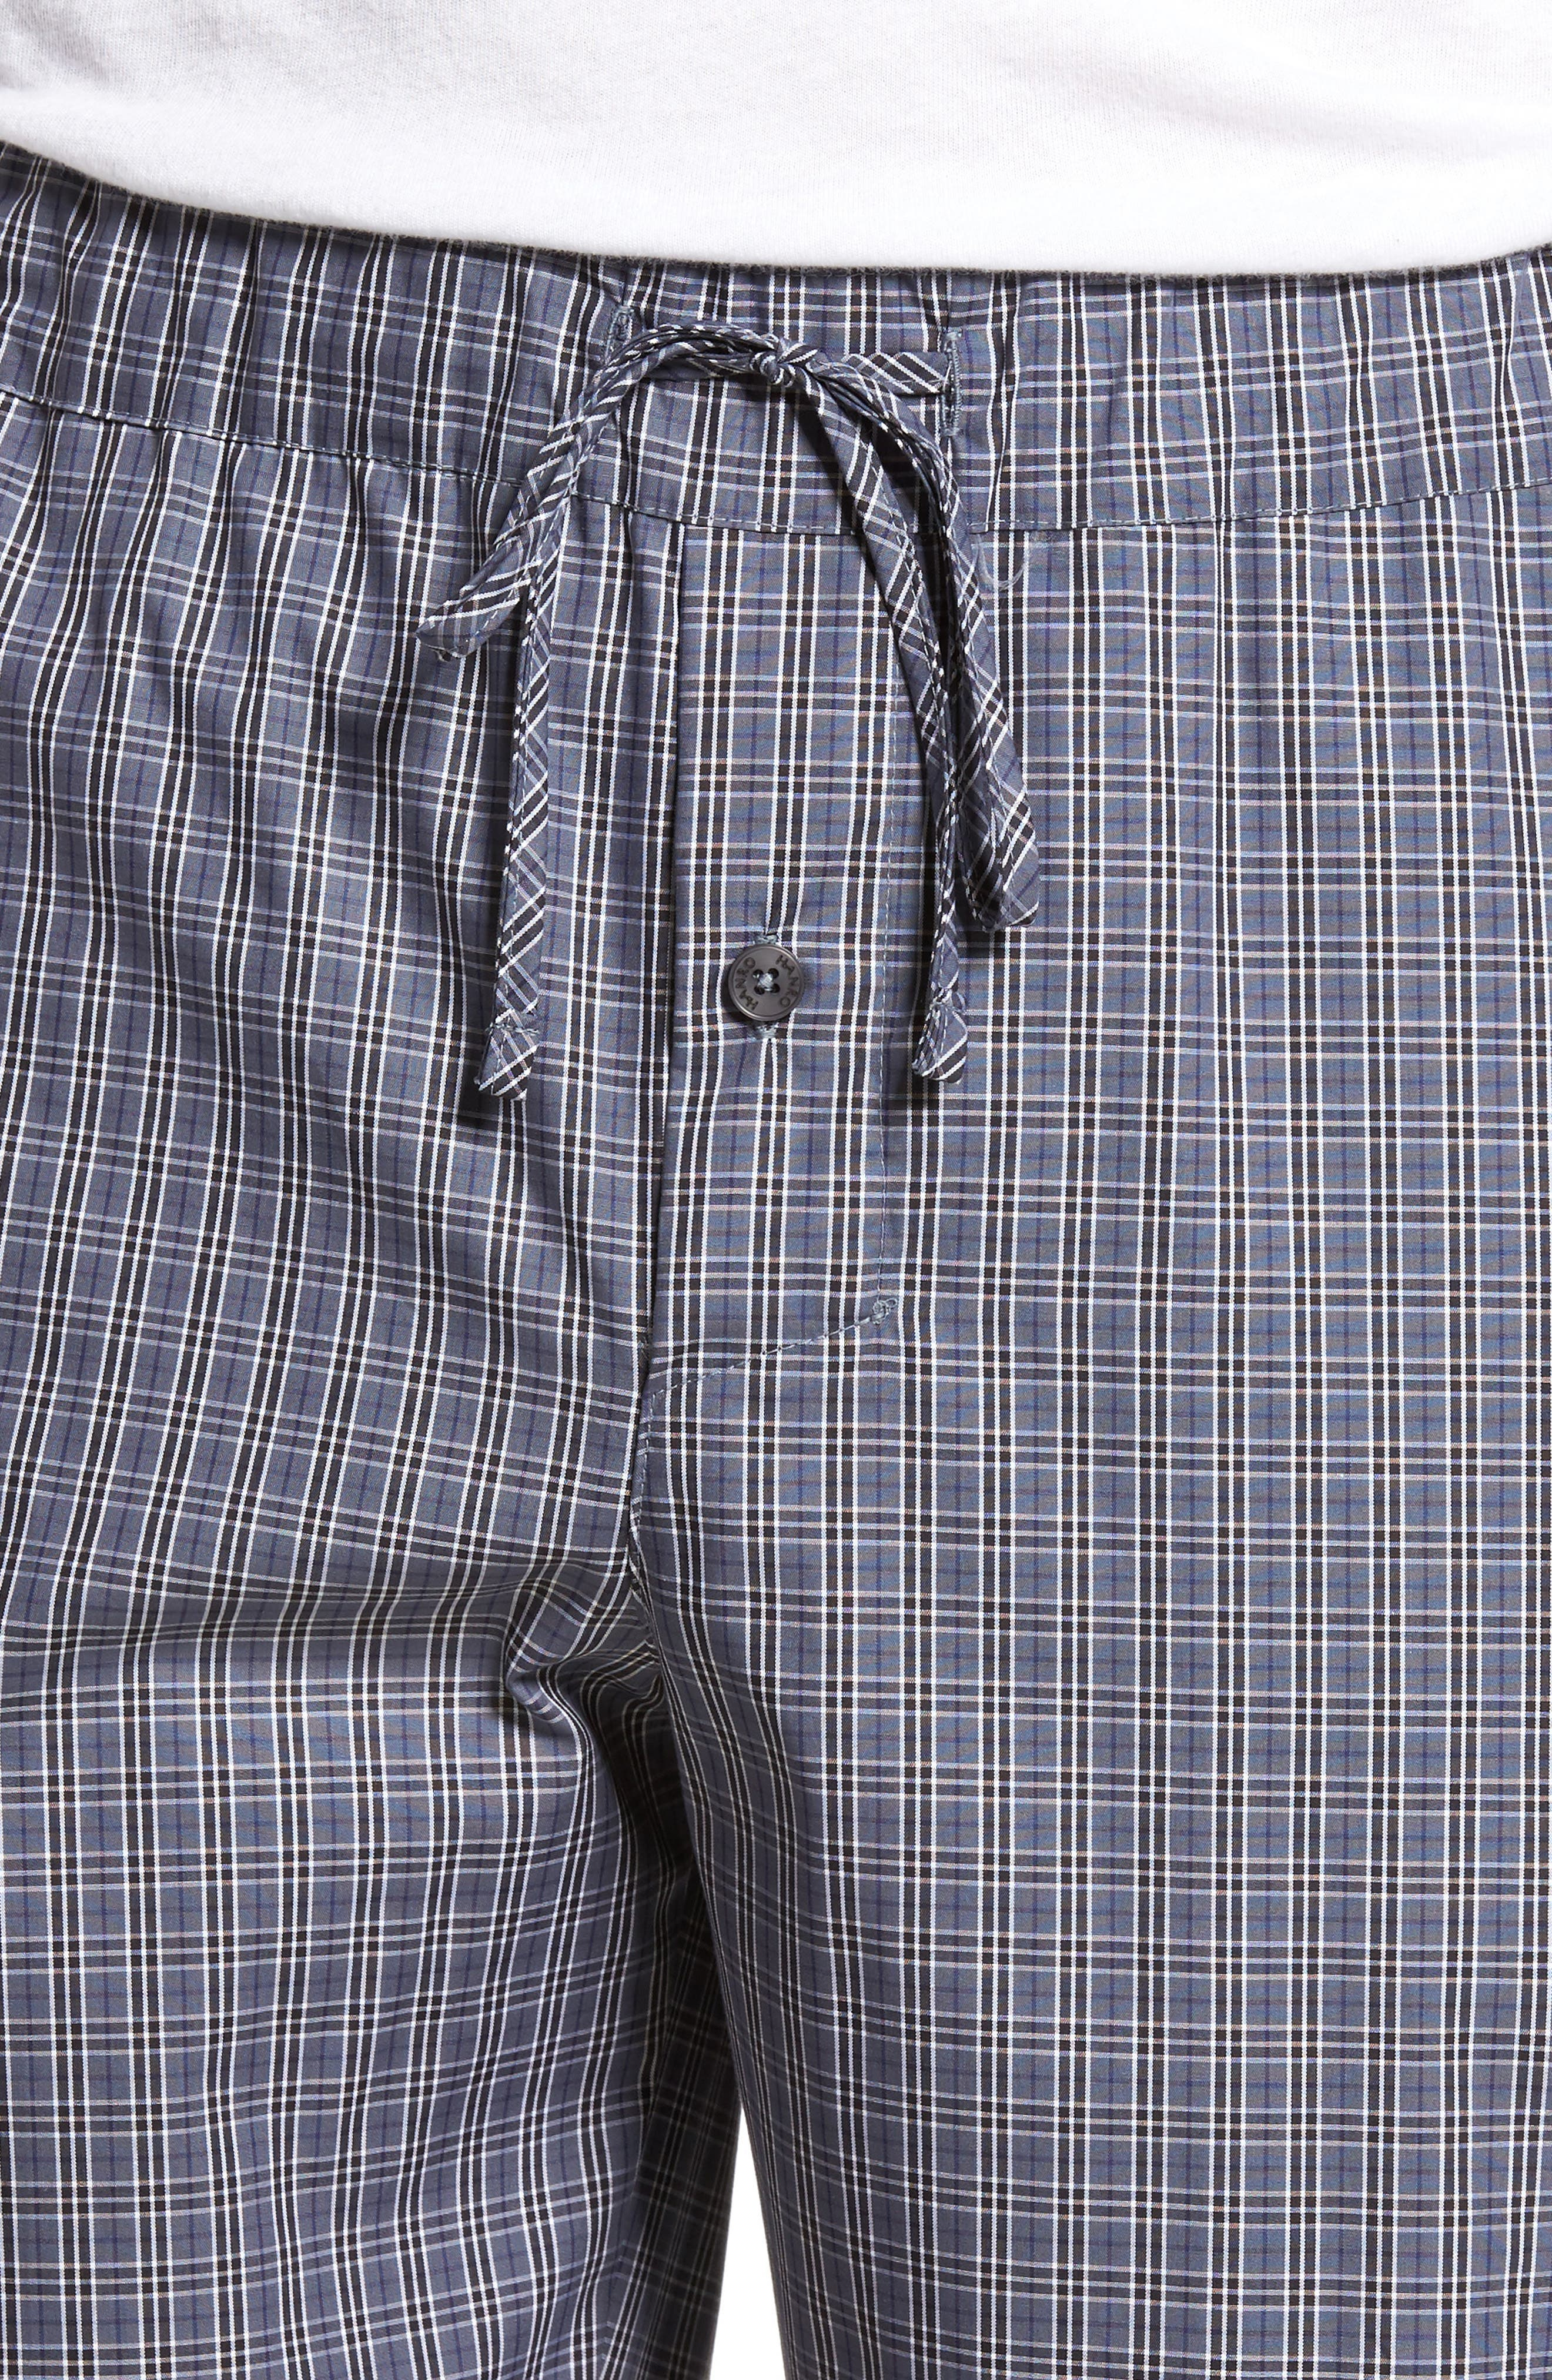 Night & Day Woven Lounge Pants,                             Alternate thumbnail 4, color,                             GREY CHECK